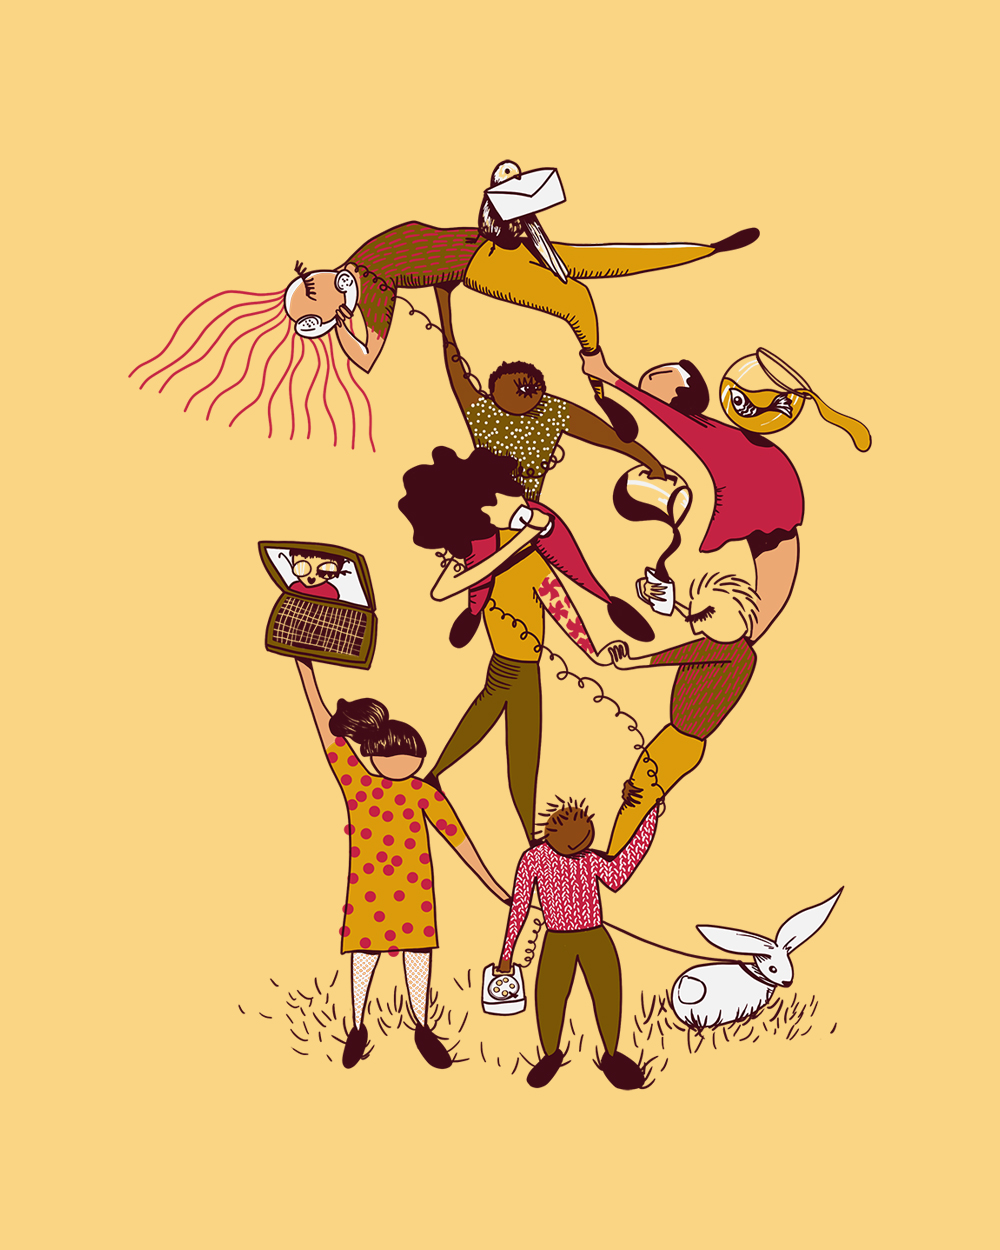 Illustration by Stefanie Auger-Roy. Featuring a group of 8 students forming a pyramid. They are holding each other, supporting each other. The background is yellow.